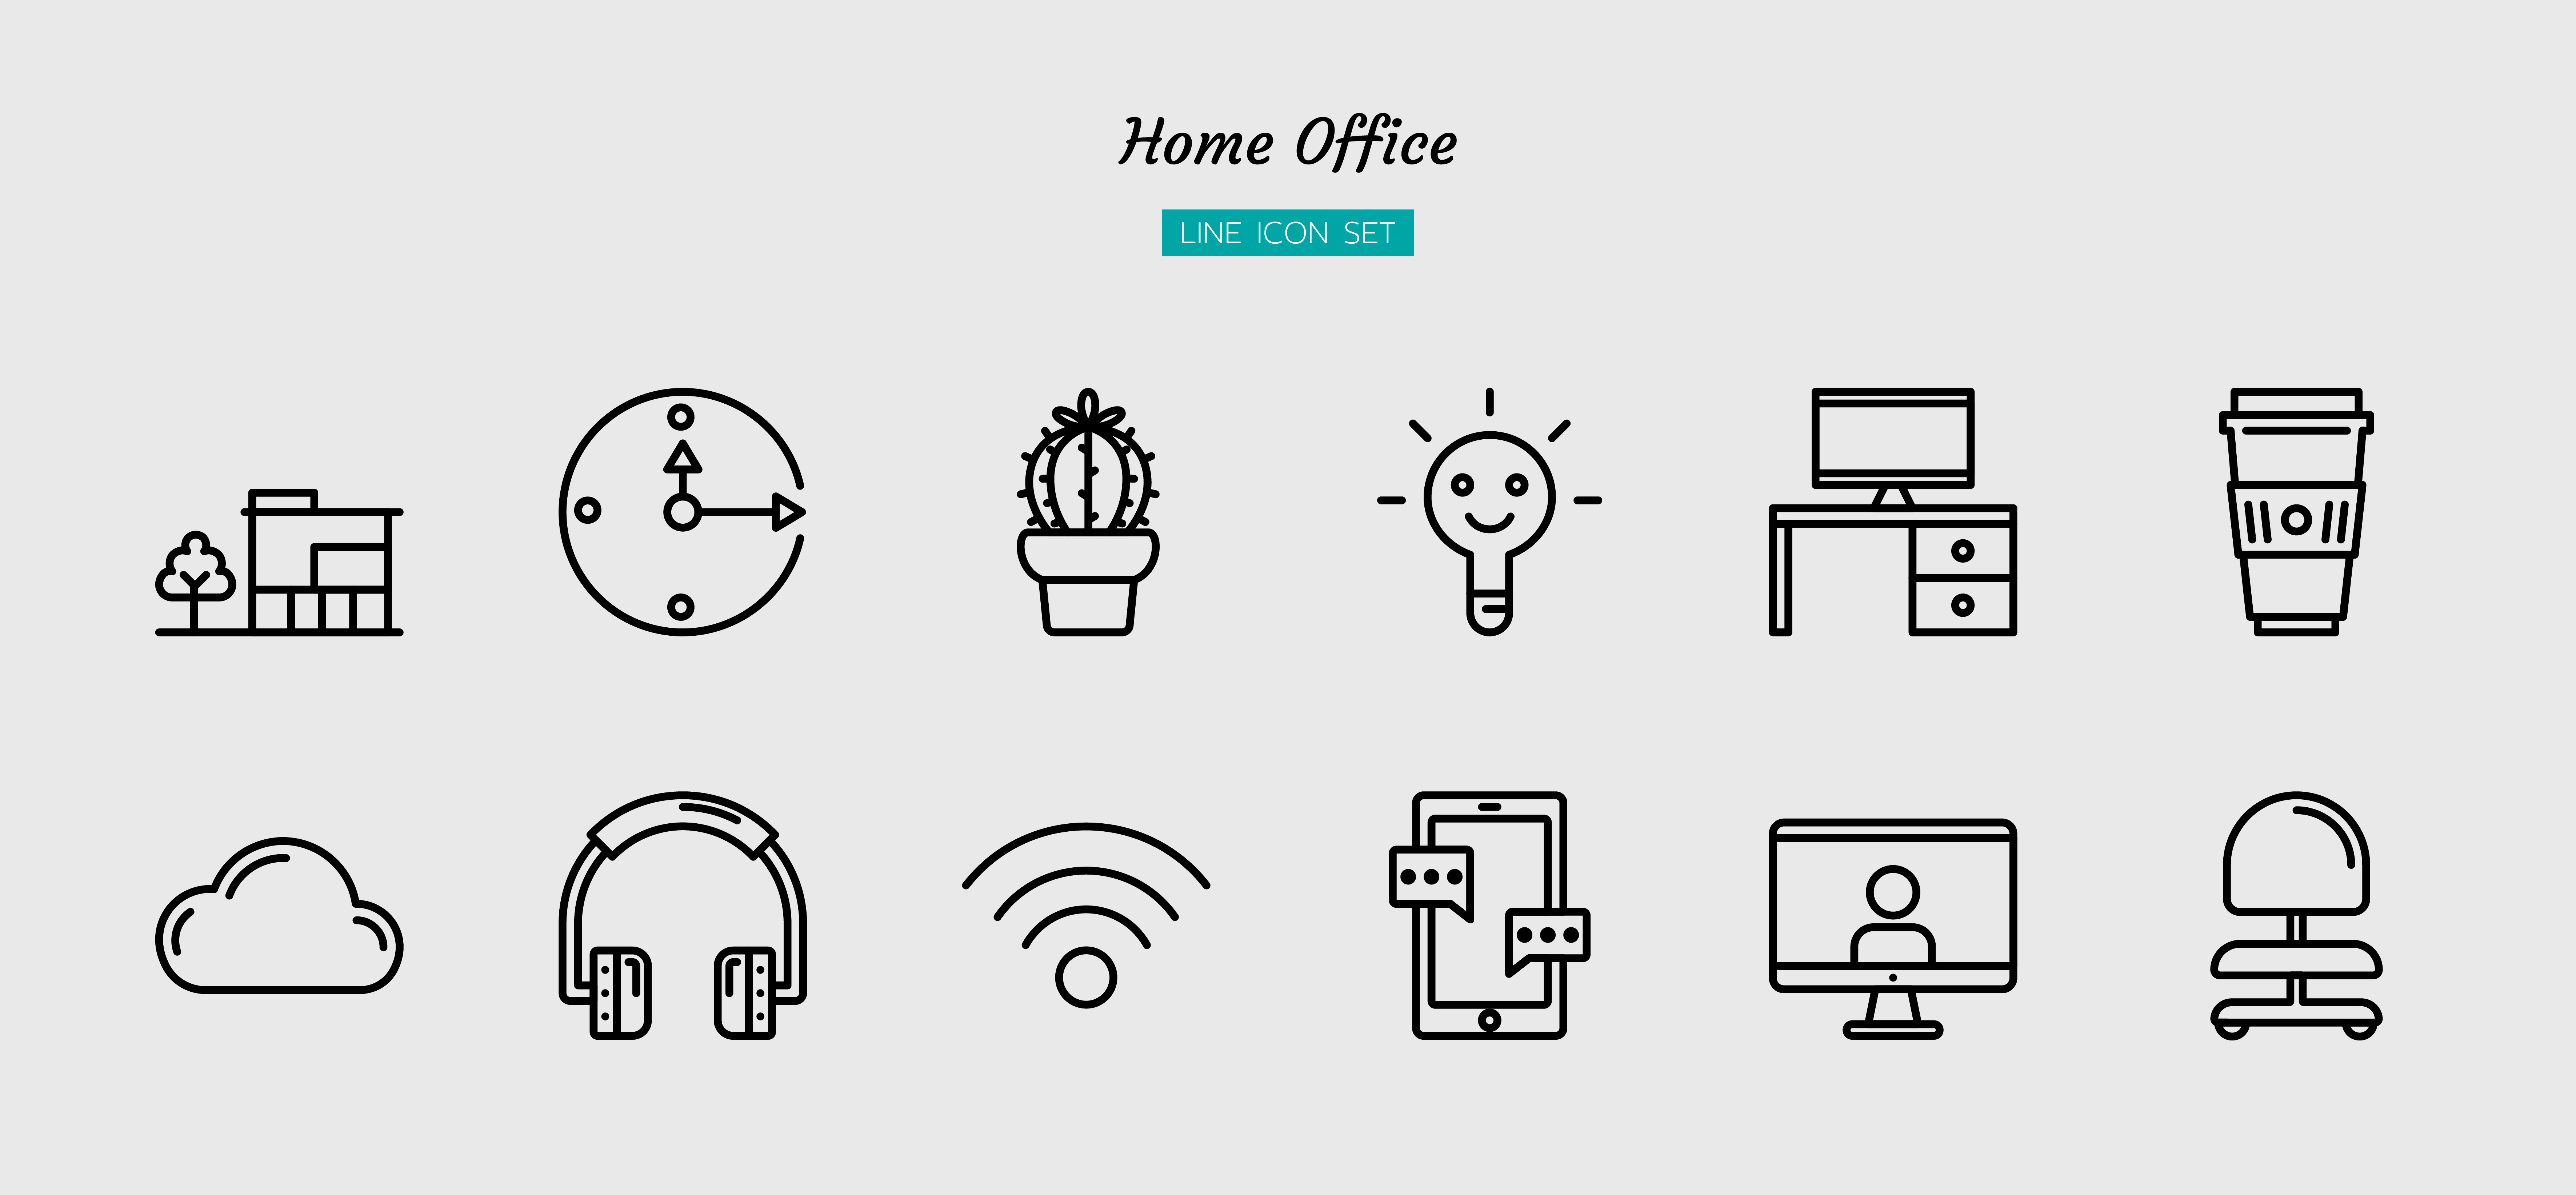 Outline home office icon symbol set vector